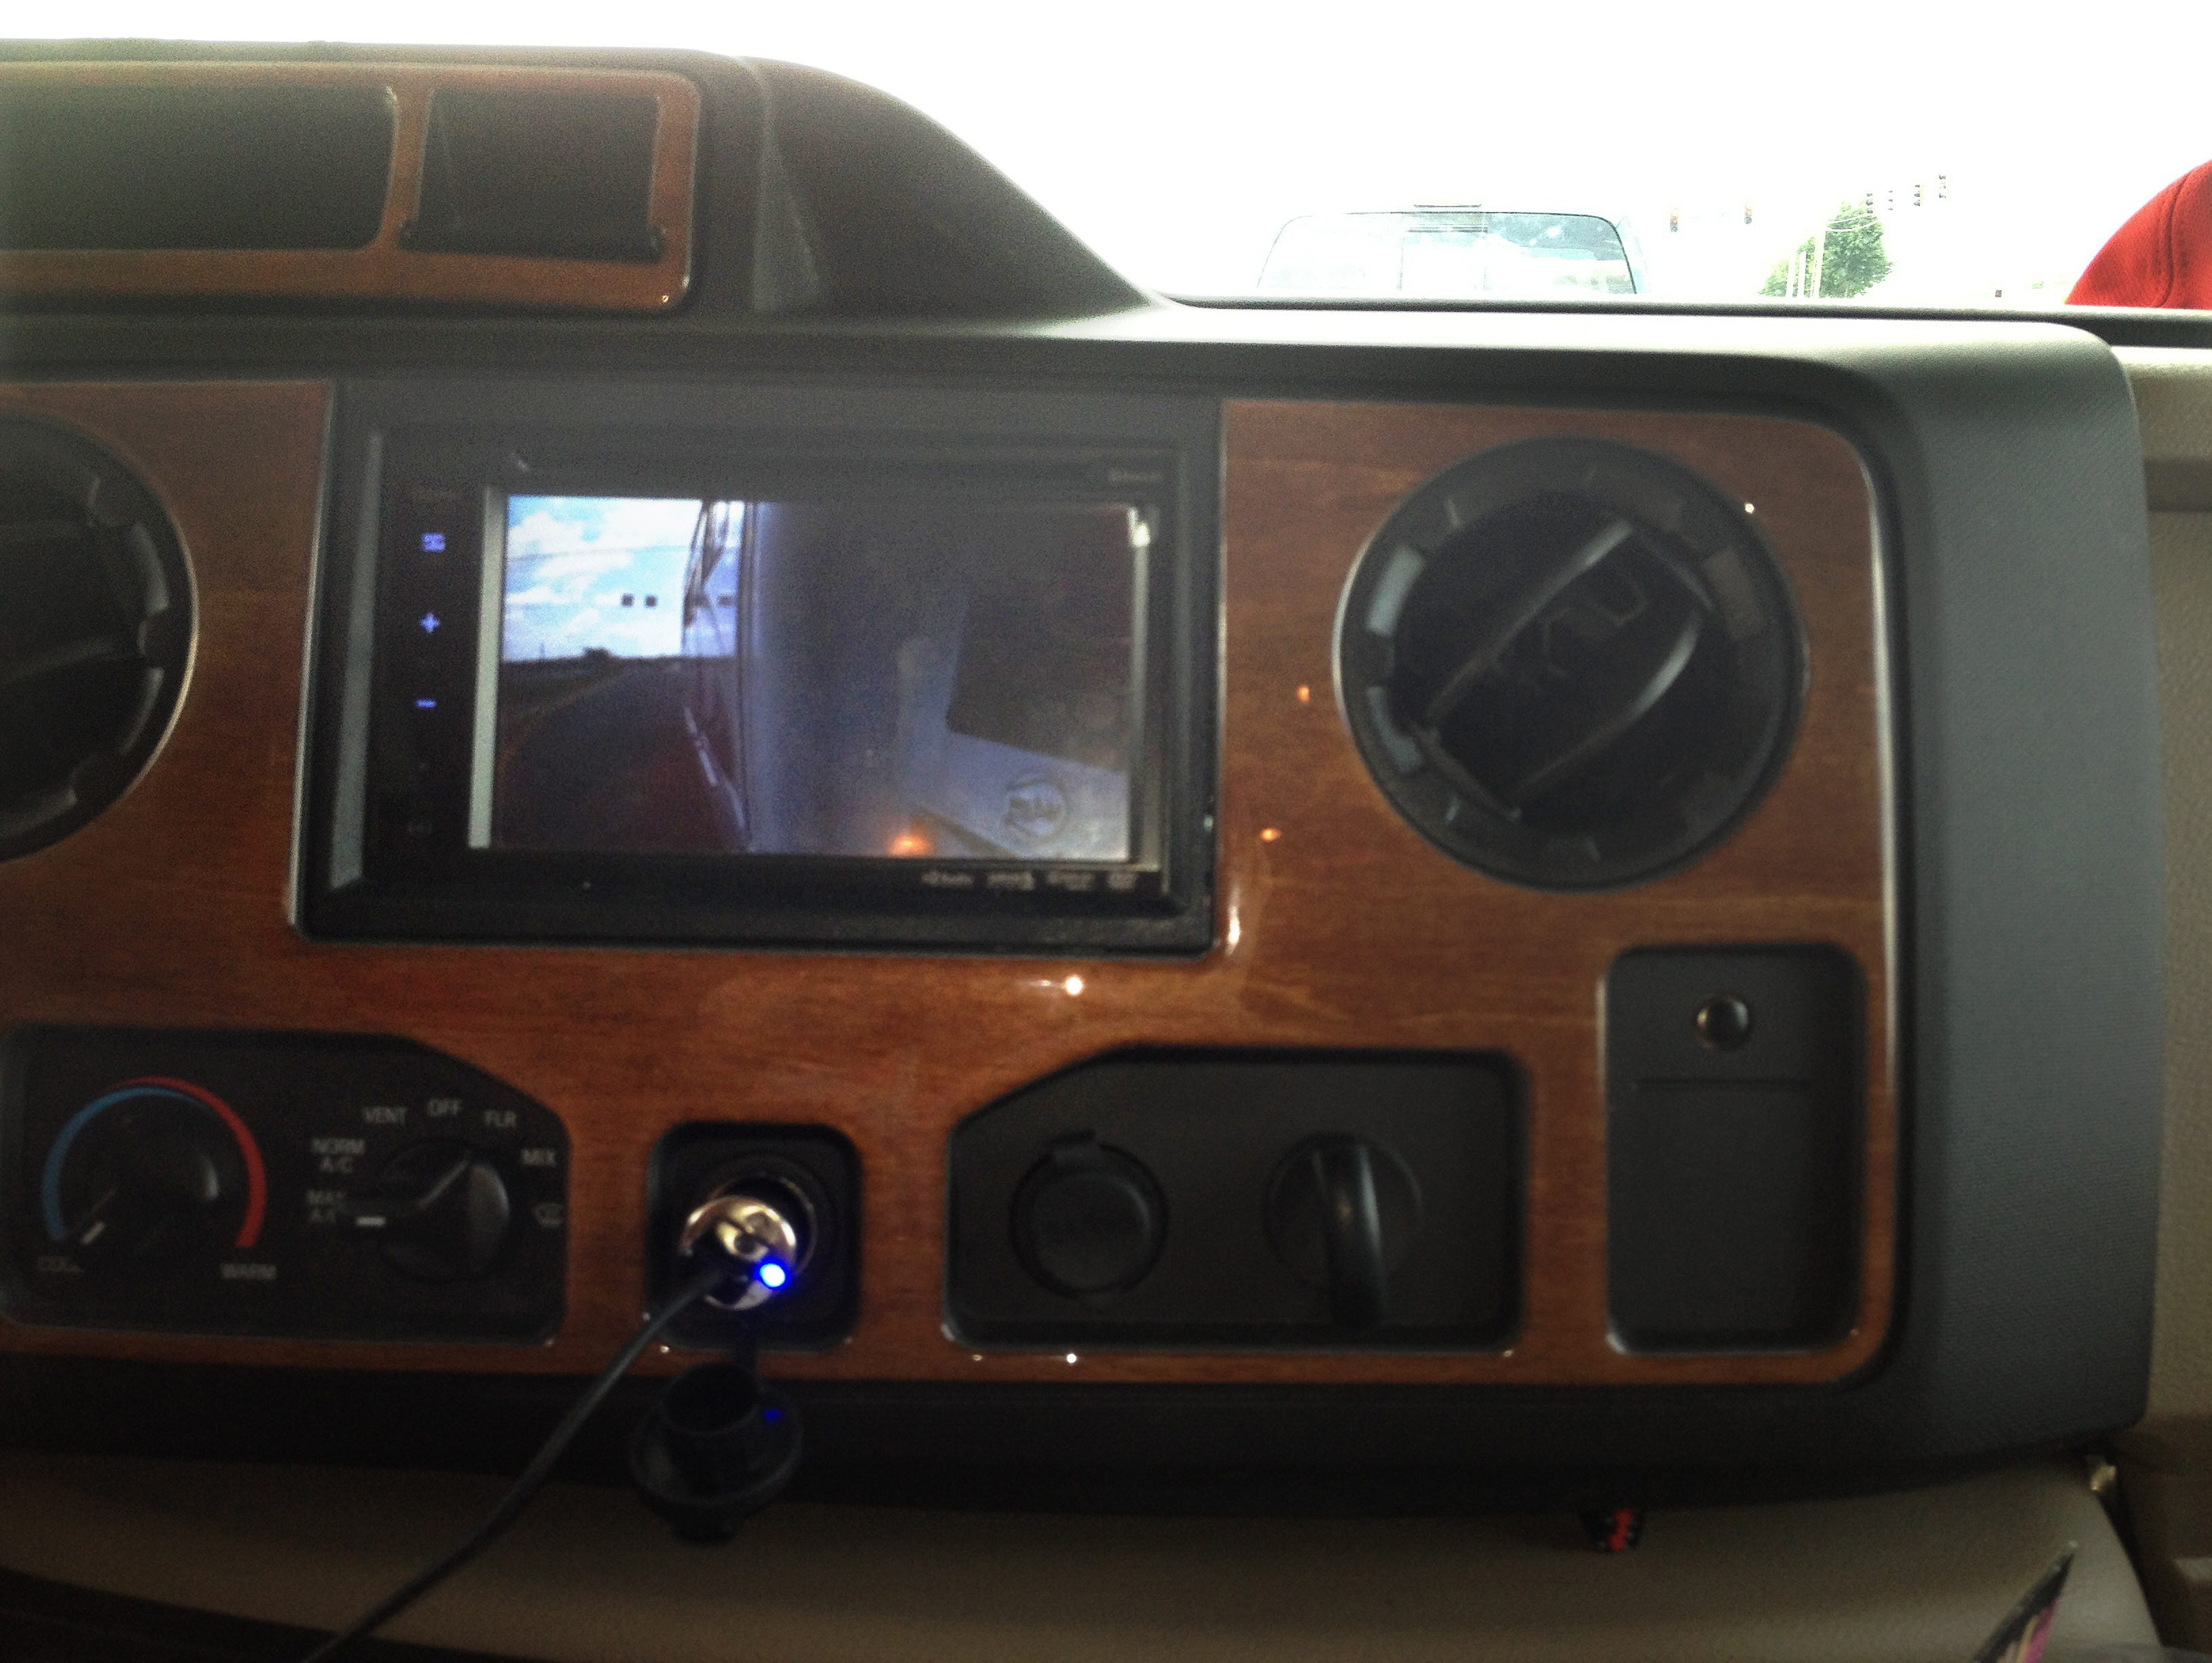 The Jayco Greyhawk is equipped with side-view cameras to help with lane changes and turns when the blinker is engaged.